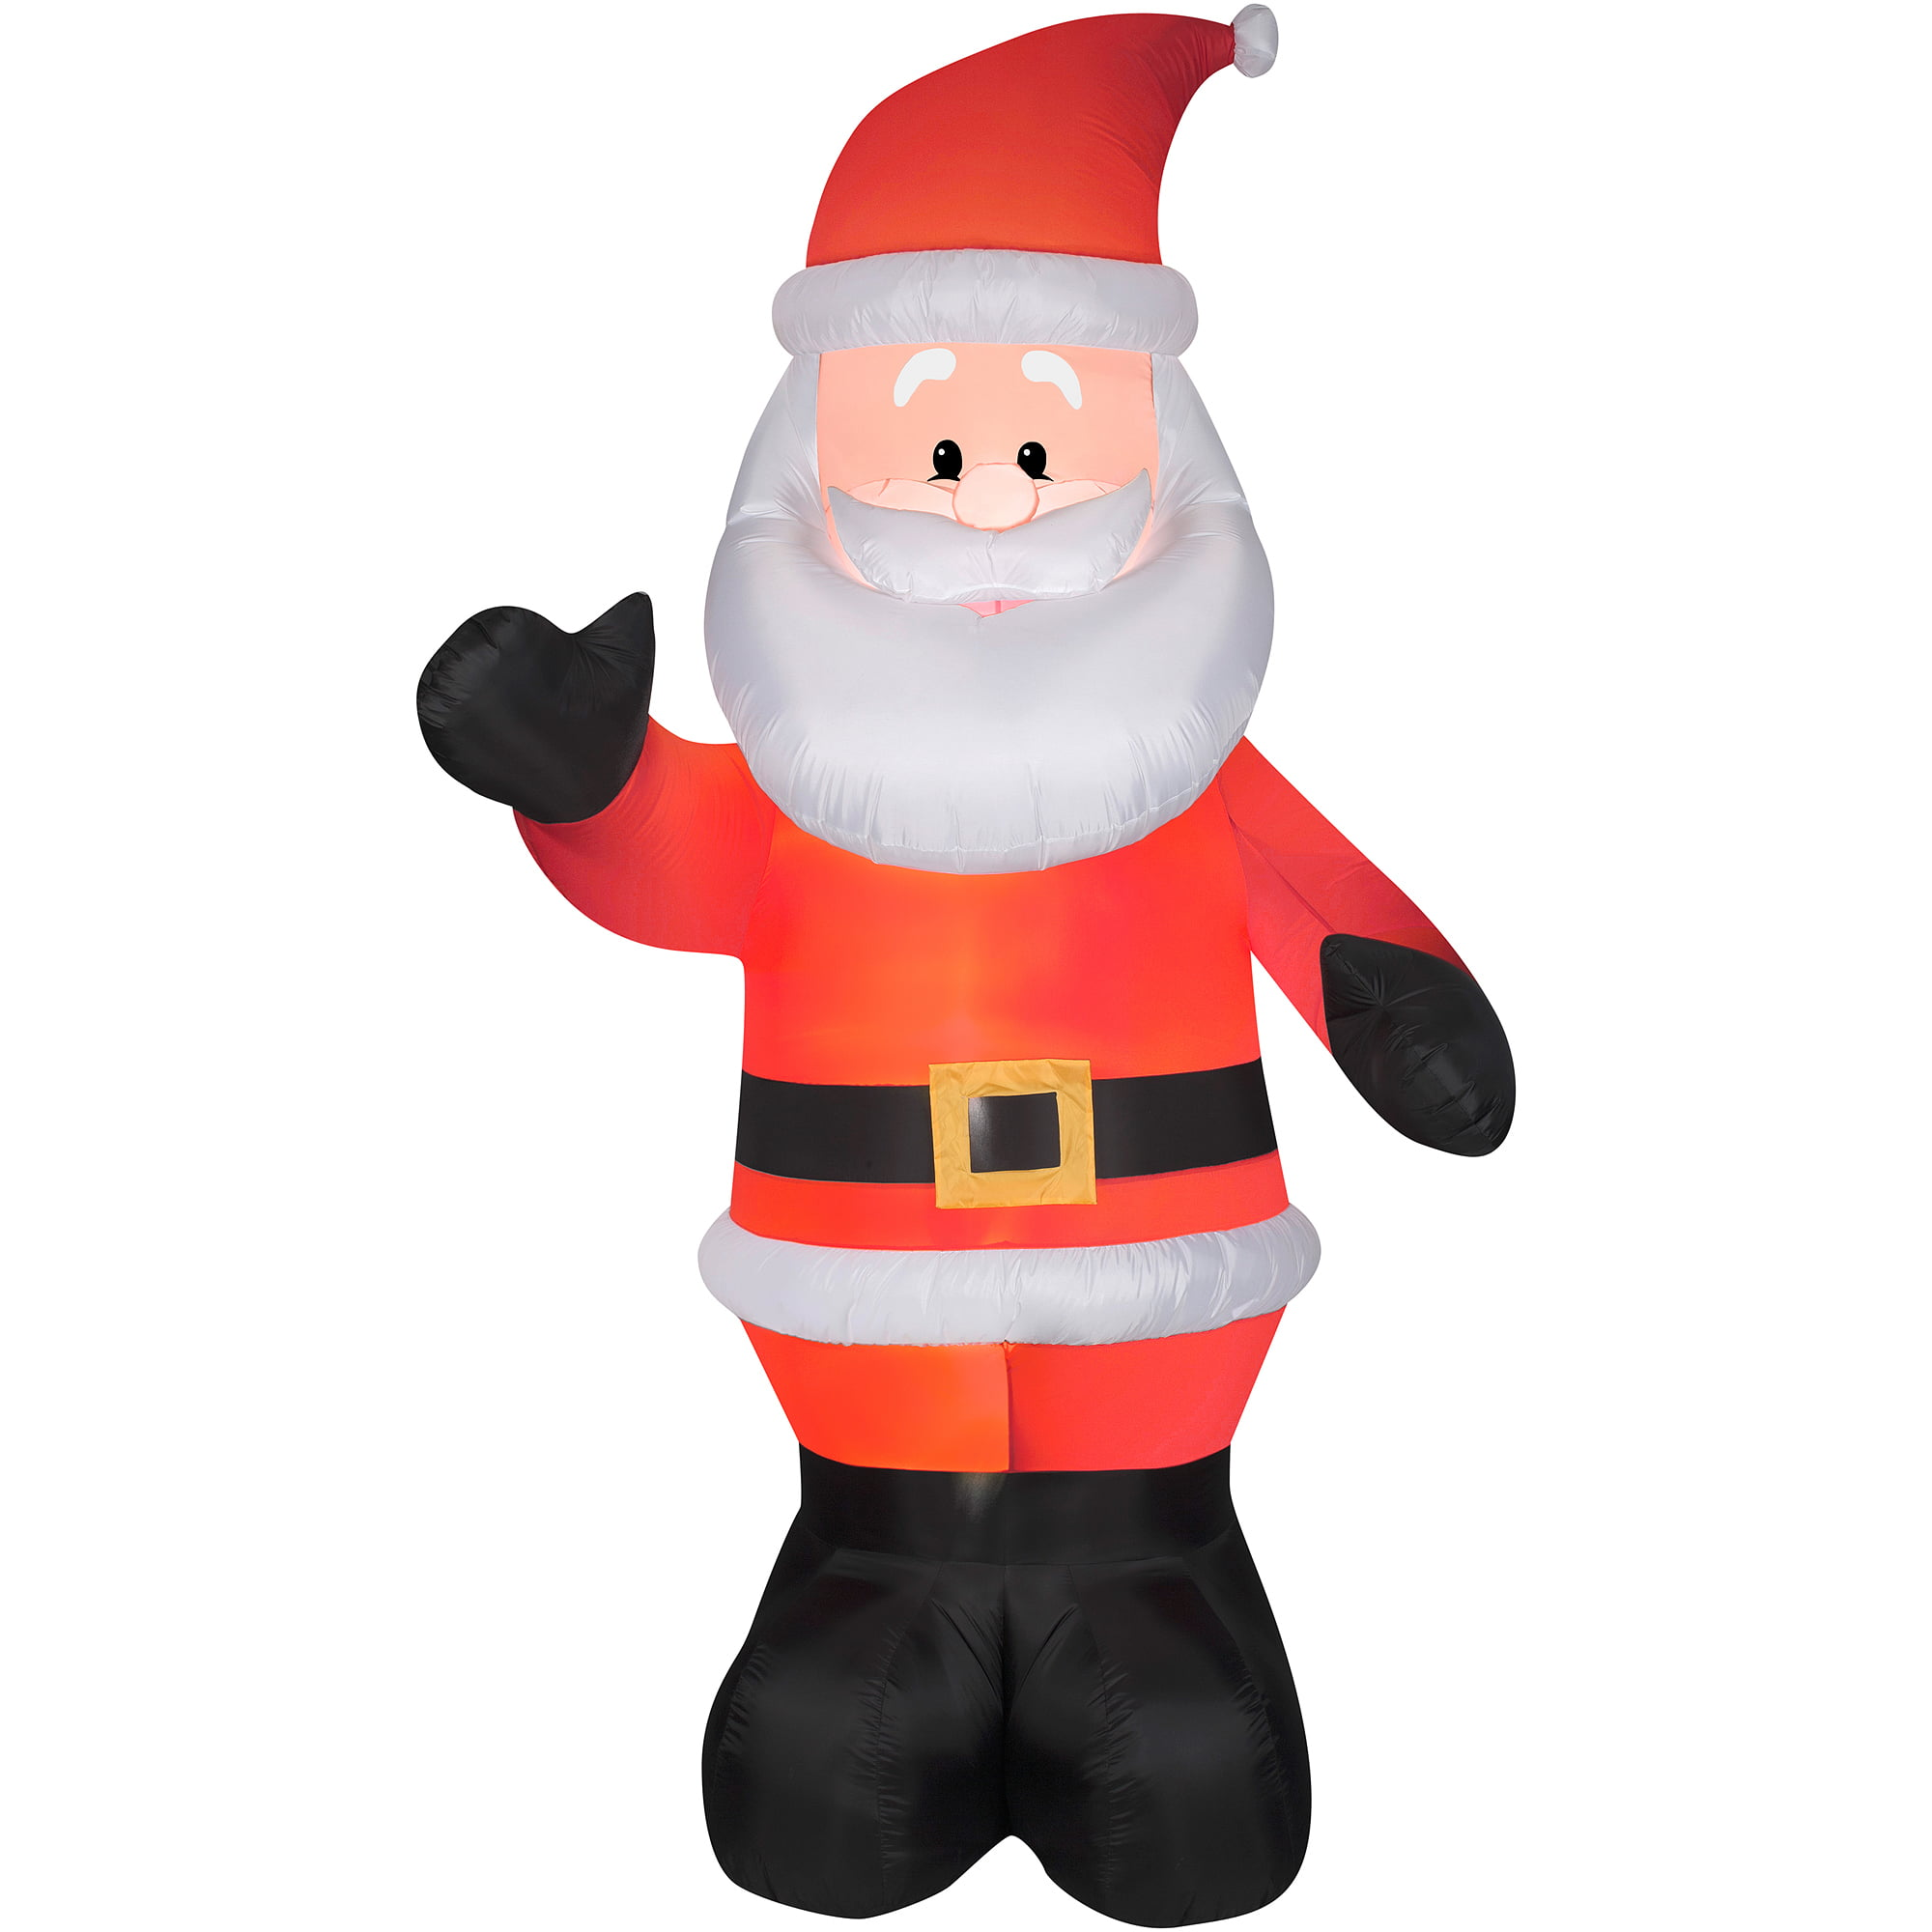 Airblown Inflatable 10' Giant Santa Christmas Prop - Walmart.com